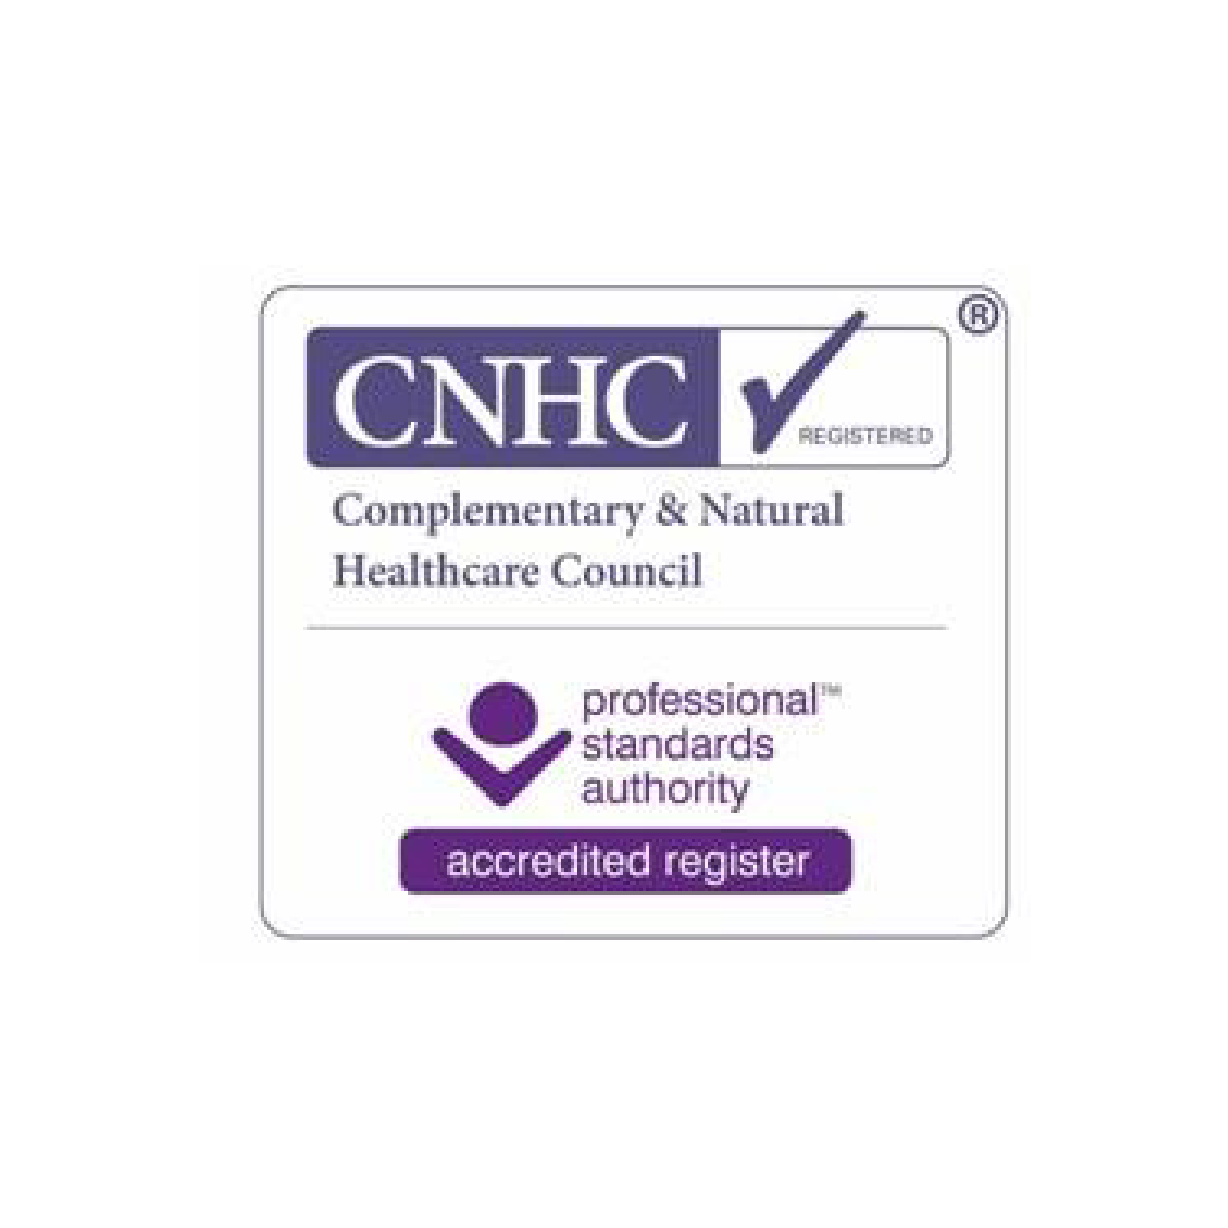 The complementary and natural health care council (CNHC) was set up by the government to protect the public. They do this by providing an independent UK register of complementary healthcare practitioners. Protection of the public is their sole purpose. The CNHC set the standards that practitioners need to meet to get onto and then stay on the register. All CNHC registrants have agreed to be bound by the highest standards of conduct and have registered voluntarily. All of them are professionally trained and fully insured to practice.